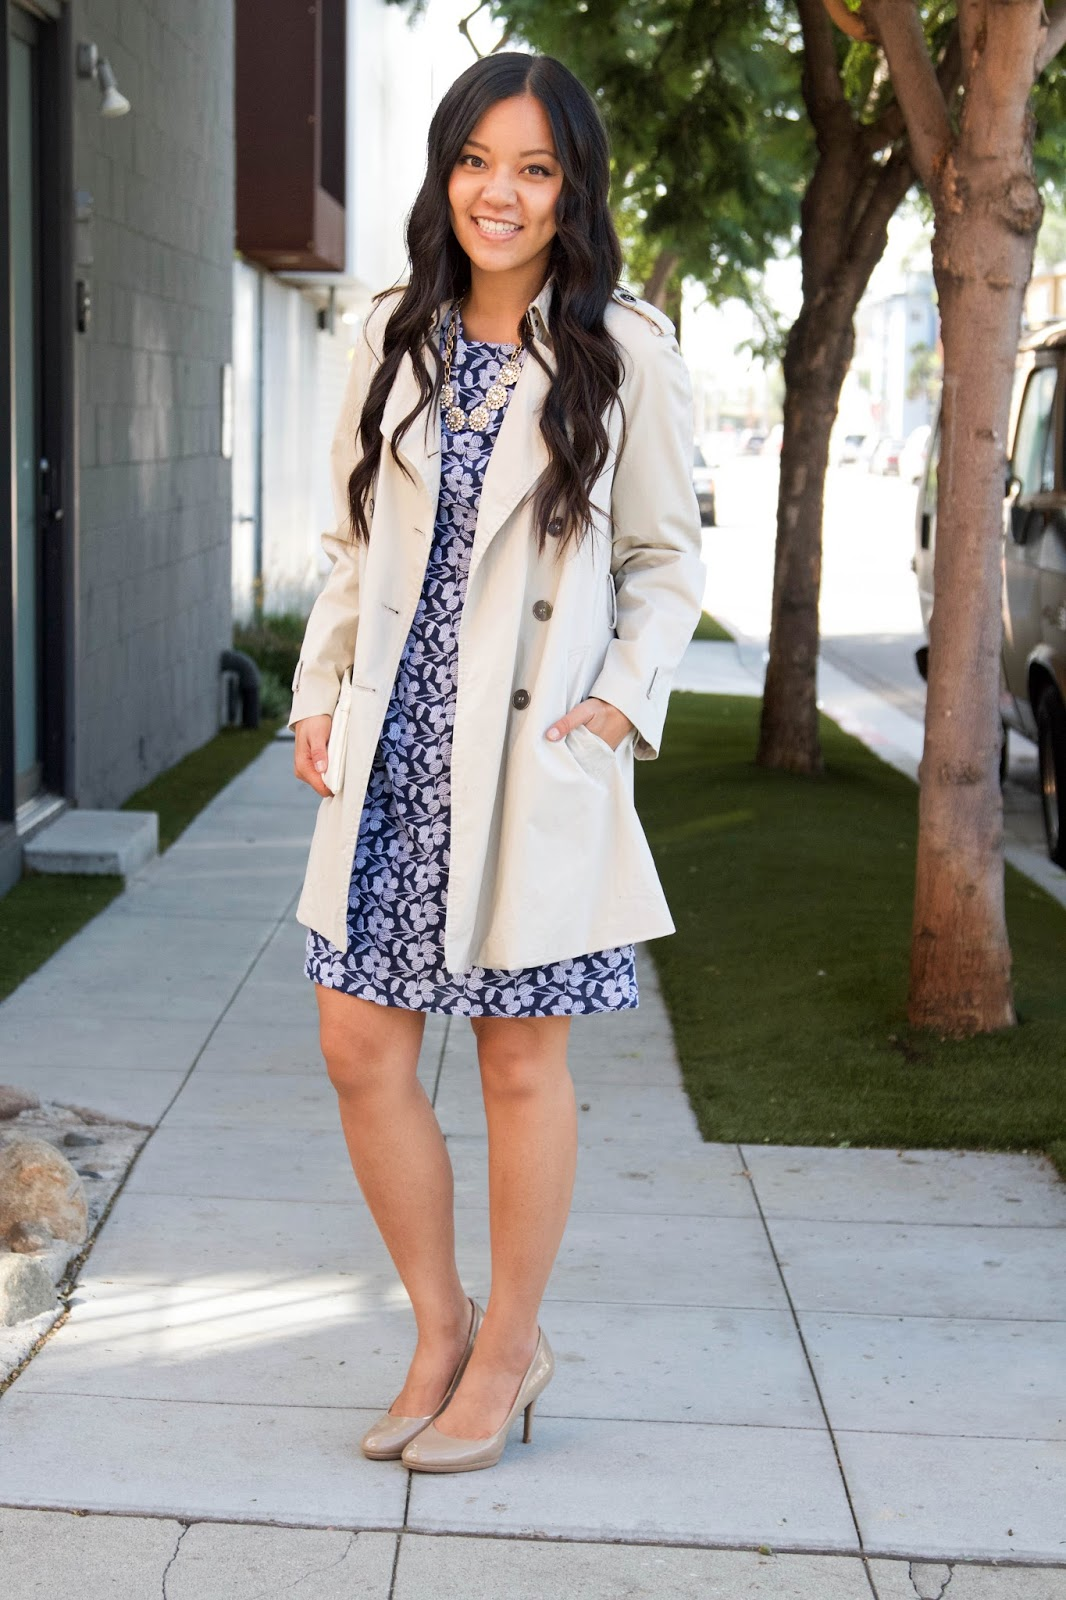 Blue Floral Dress + White Trench Coat + Nude Heels